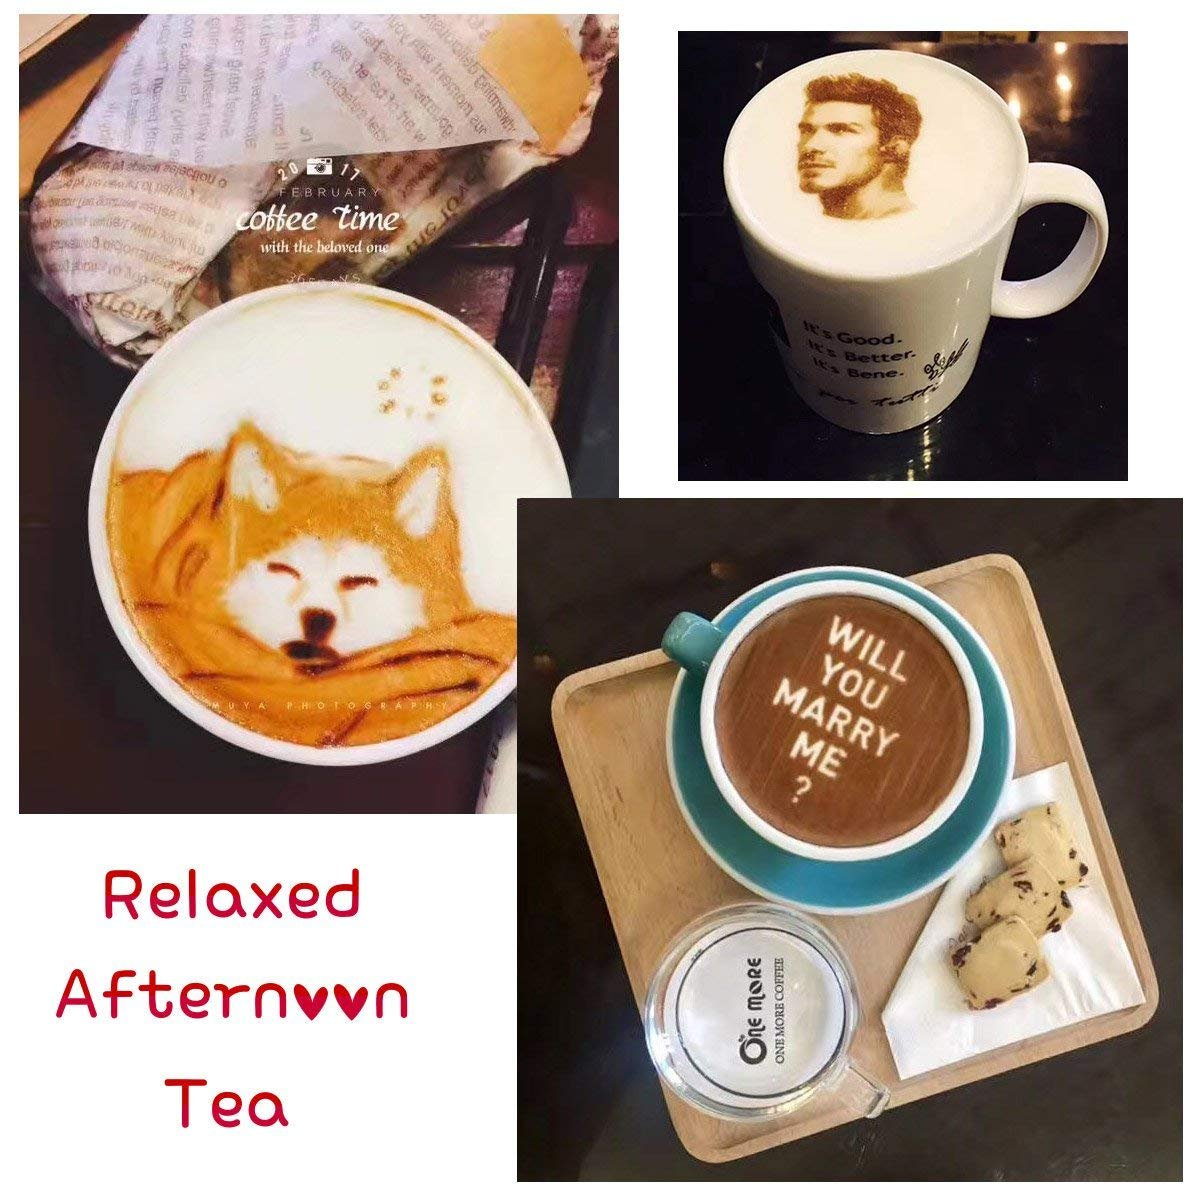 Amazon.com: 4 Cups 3D Coffee Printer, 2018 New Upgrade Latte Cake Selfie Art Printer Full Automatic Edible Ink Printer with 8